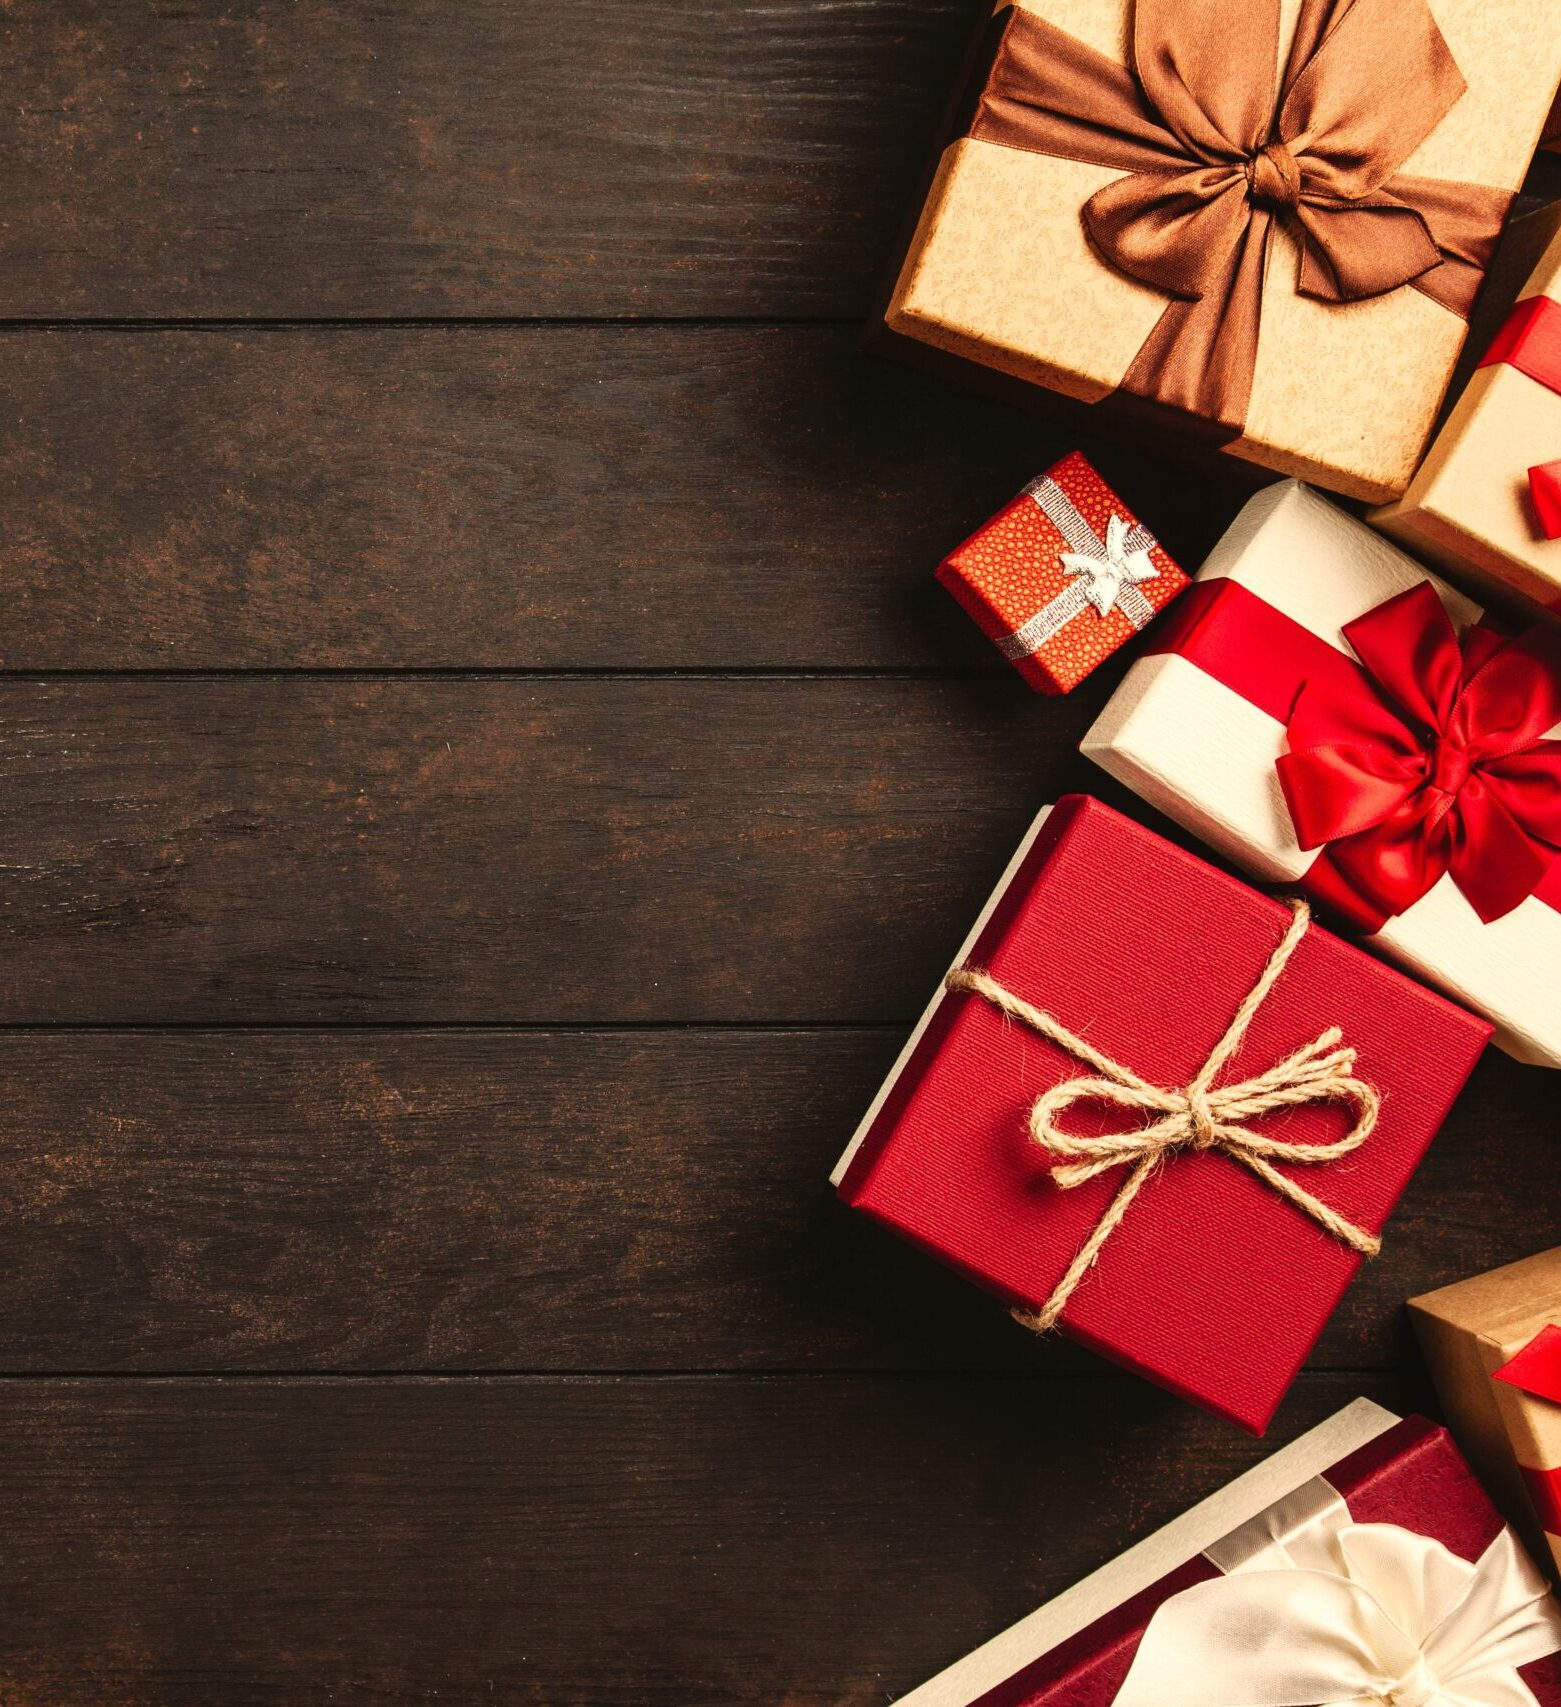 Unique Gifts for Men who have Everything